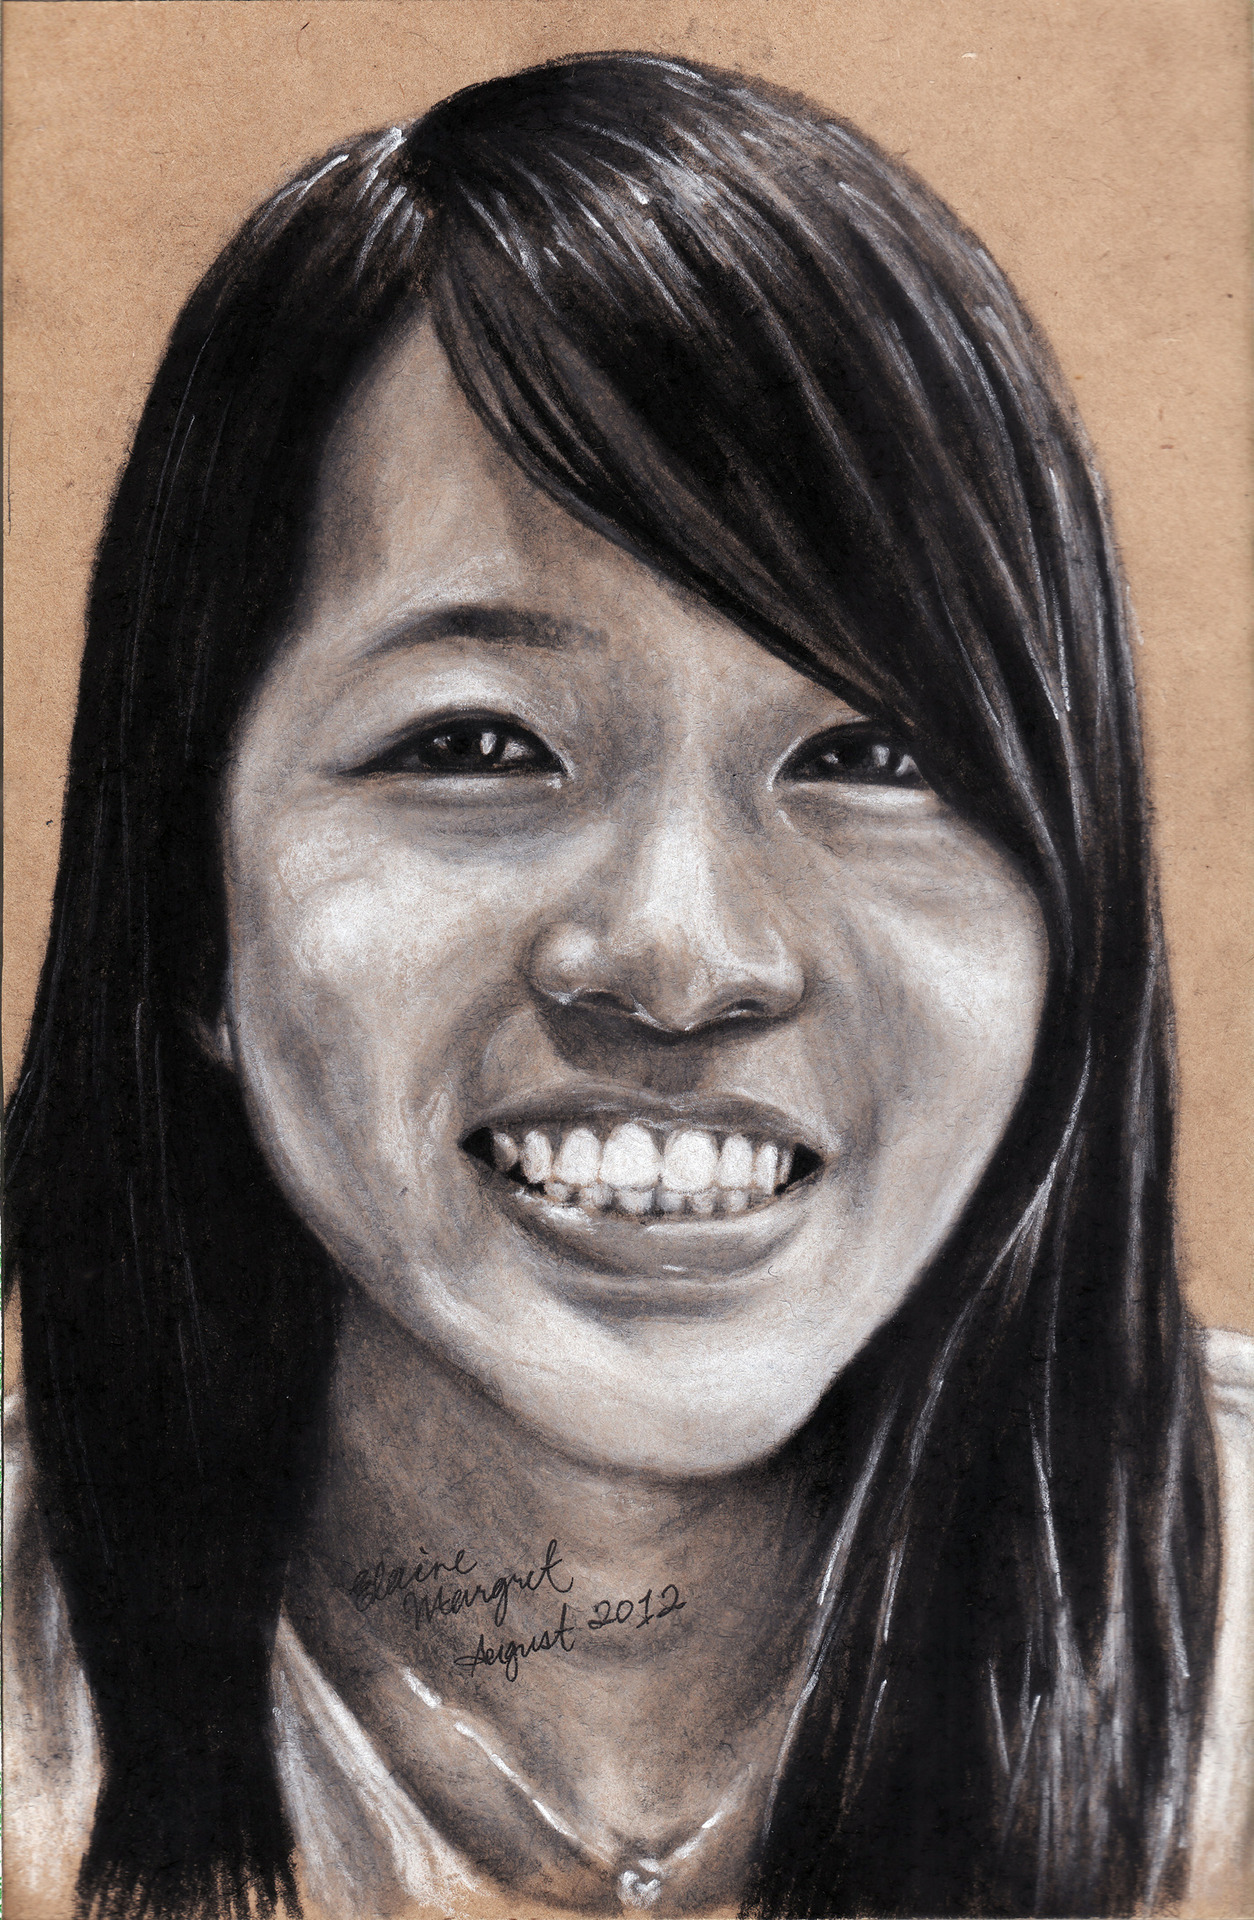 August 2012Portrait of a friend for her birthday!210mm x 148mm (A5)Soft Pastels on brown paper